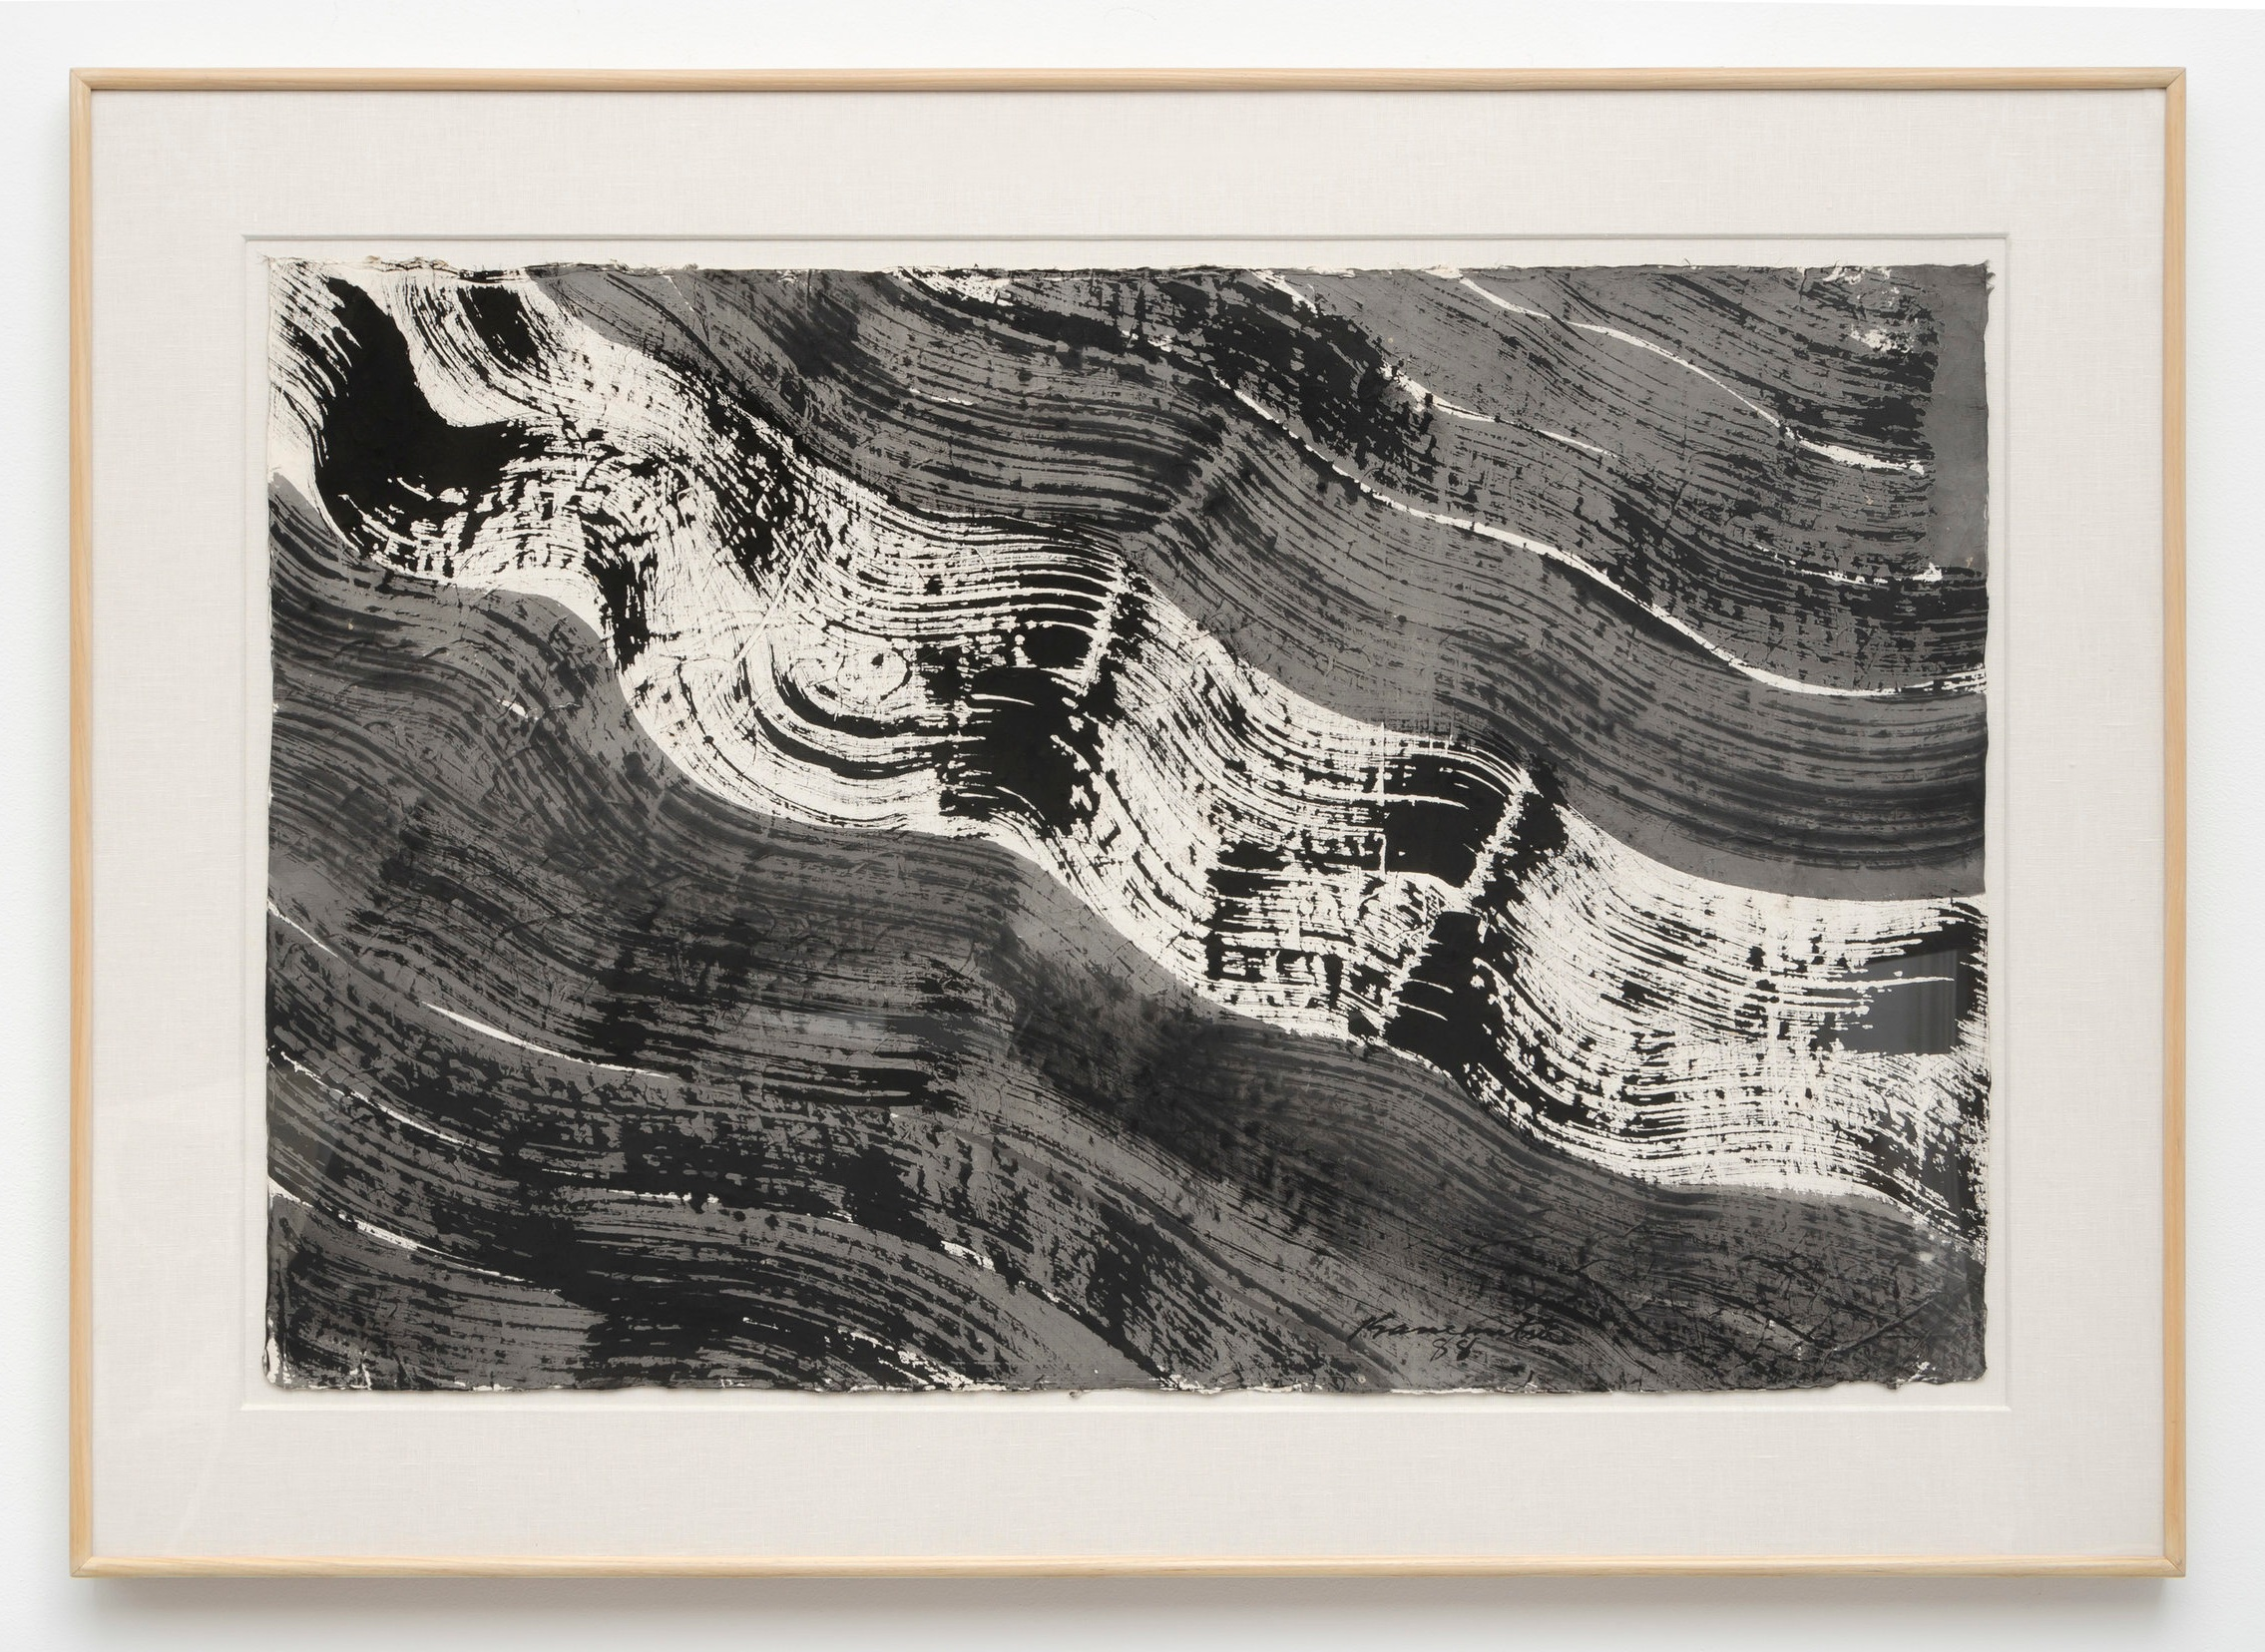 Nagare #5   1988  sumi on handmade Japanese paper  33.5 x 46.5 inches, 85.1 x 118.1 centimeters